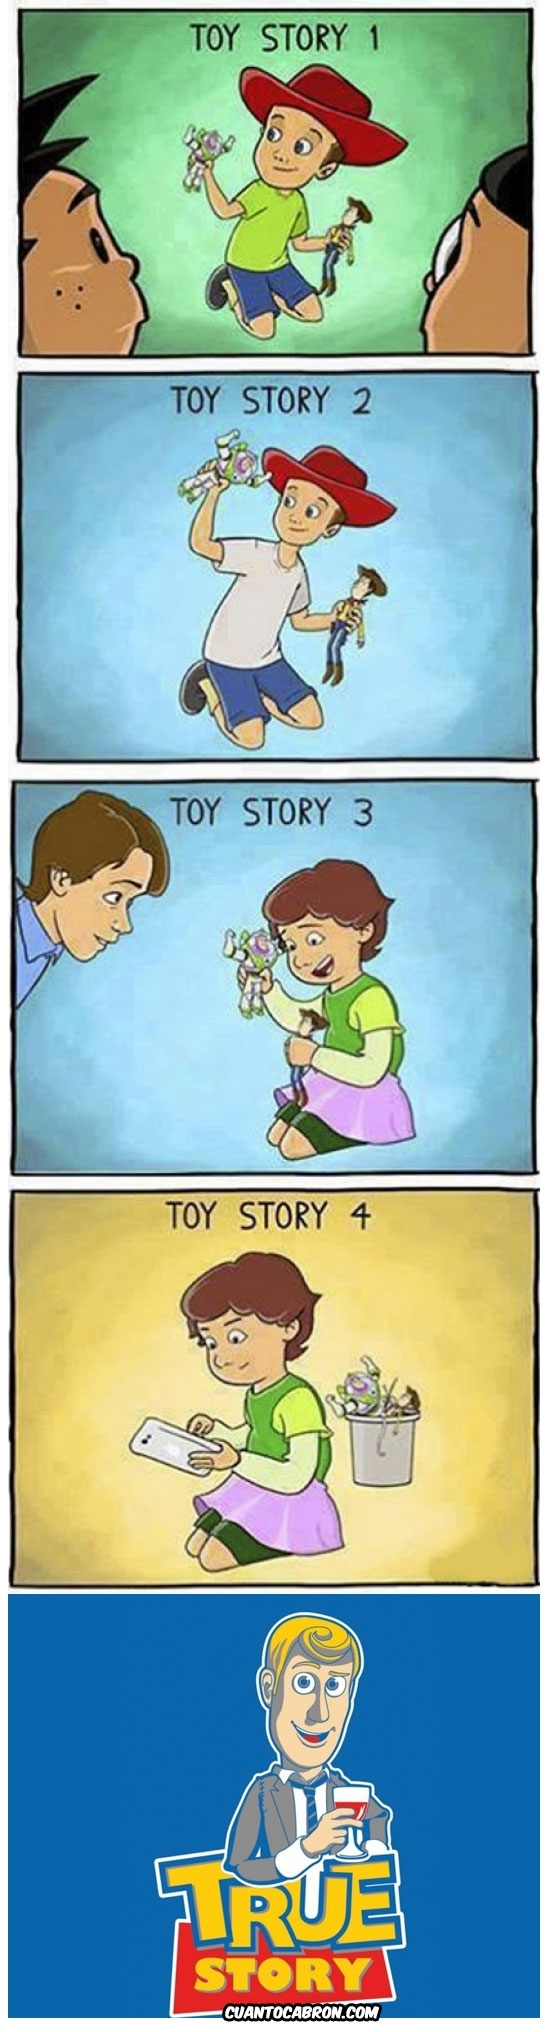 andy,buzz light year,juguetes,toy story,true story,woody